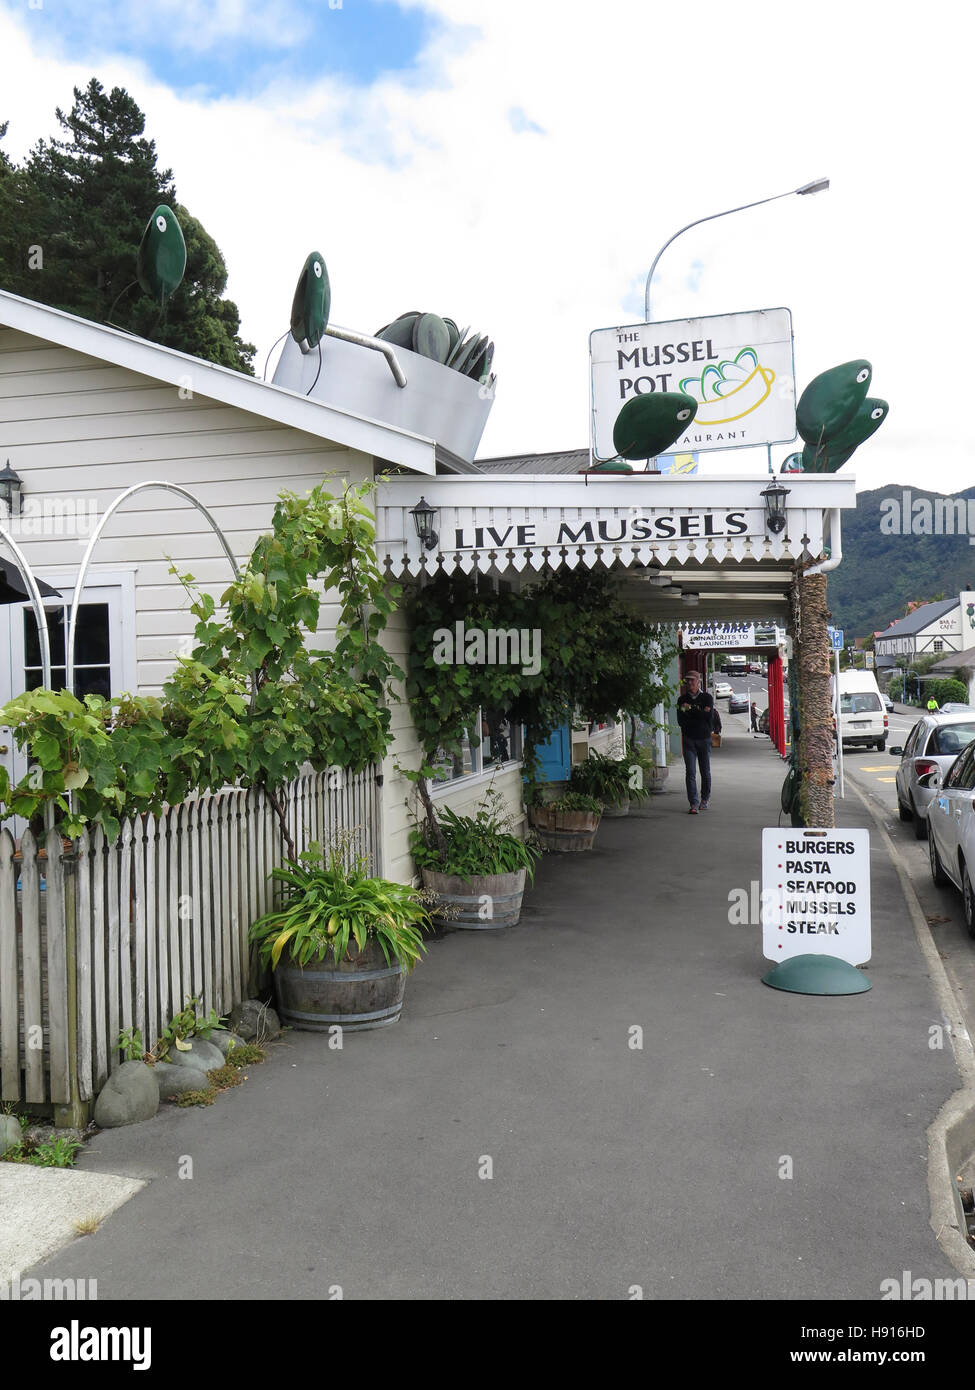 Mussel shops in Havelock, South Island, New Zealand - Stock Image